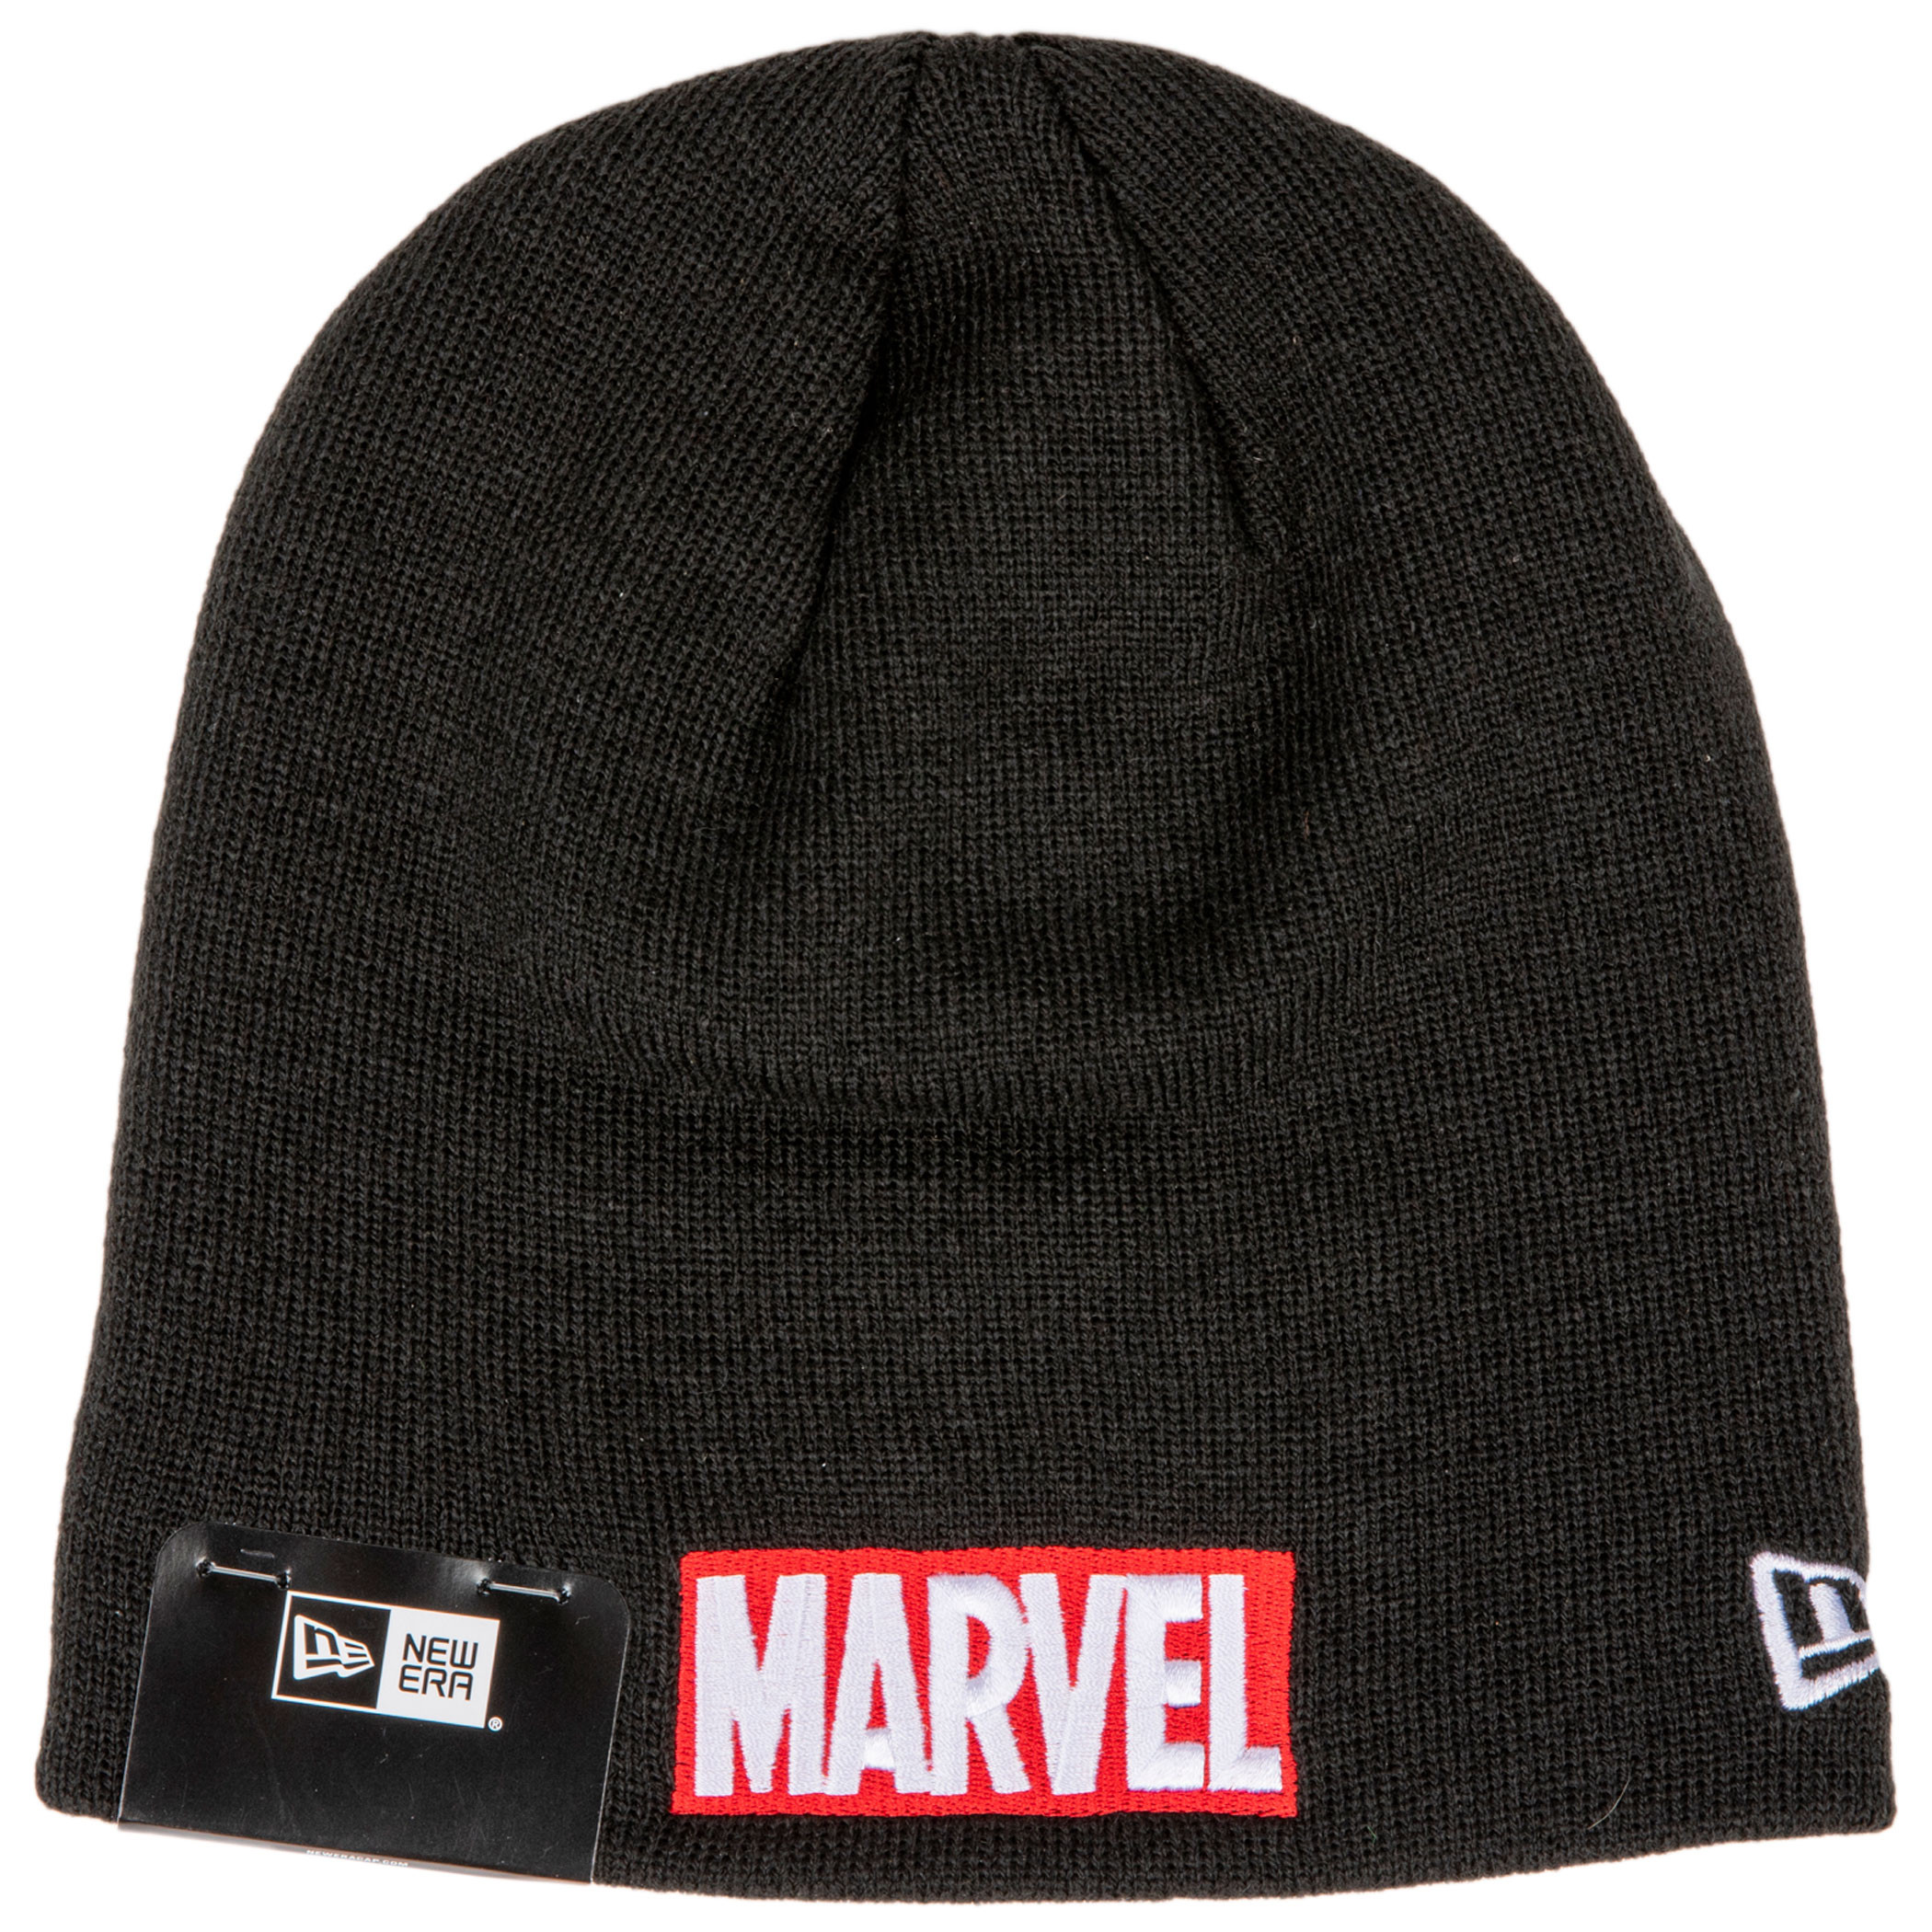 Marvel Brand Red Text Logo Knit New Era Beanie